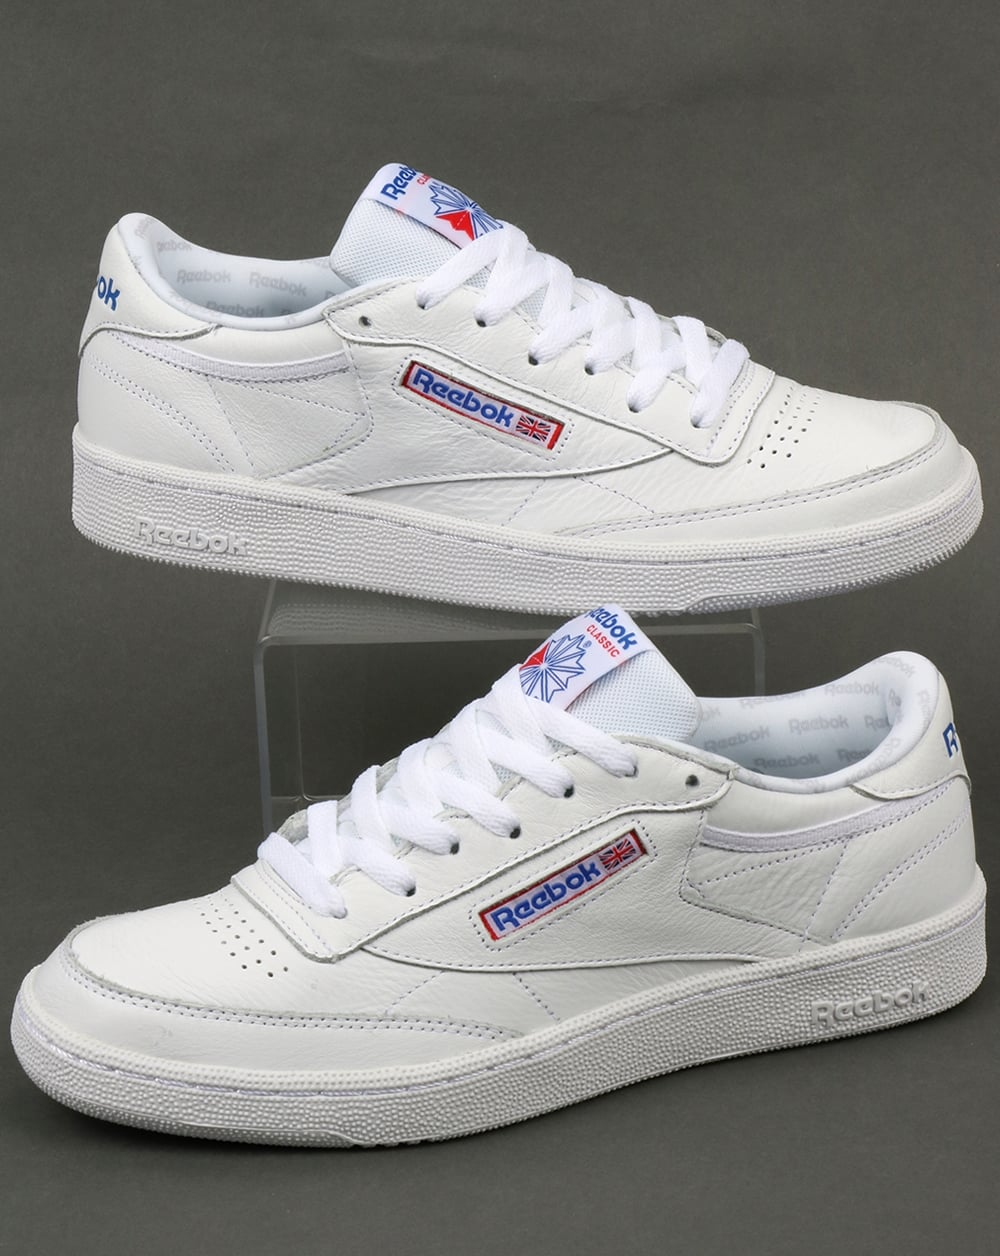 reebok club c 85 so trainers white solid grey shoes leather classics. Black Bedroom Furniture Sets. Home Design Ideas